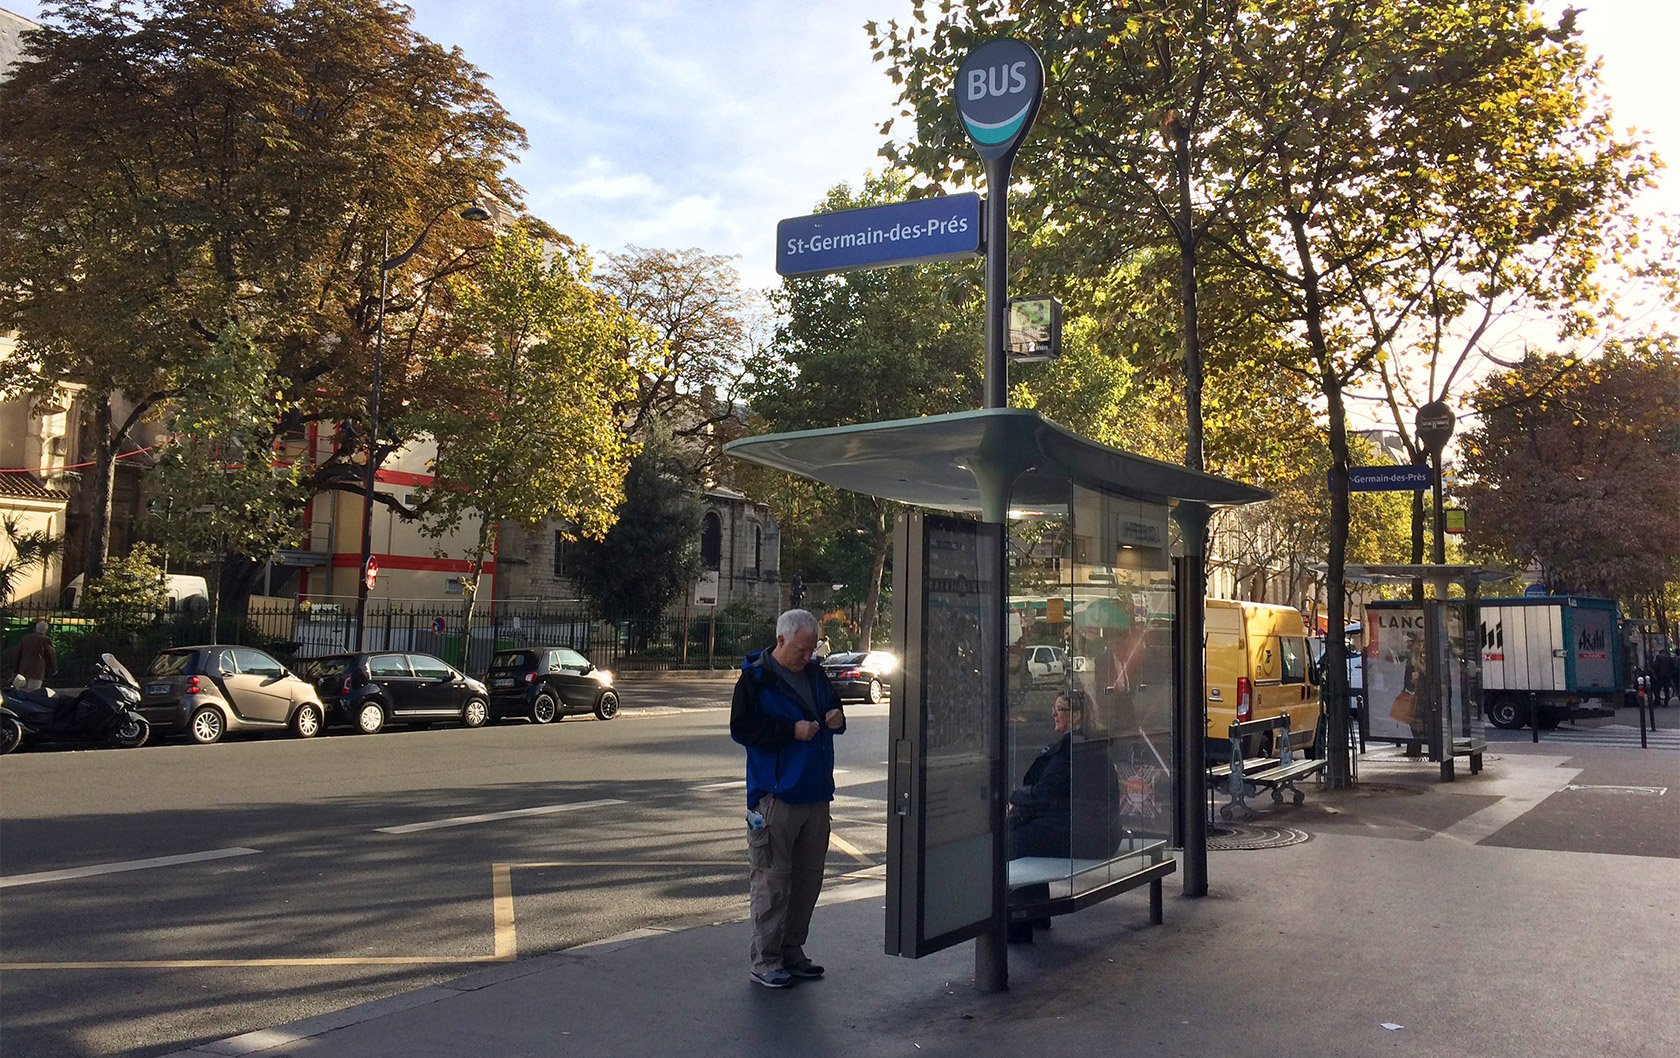 saint-germain-bus